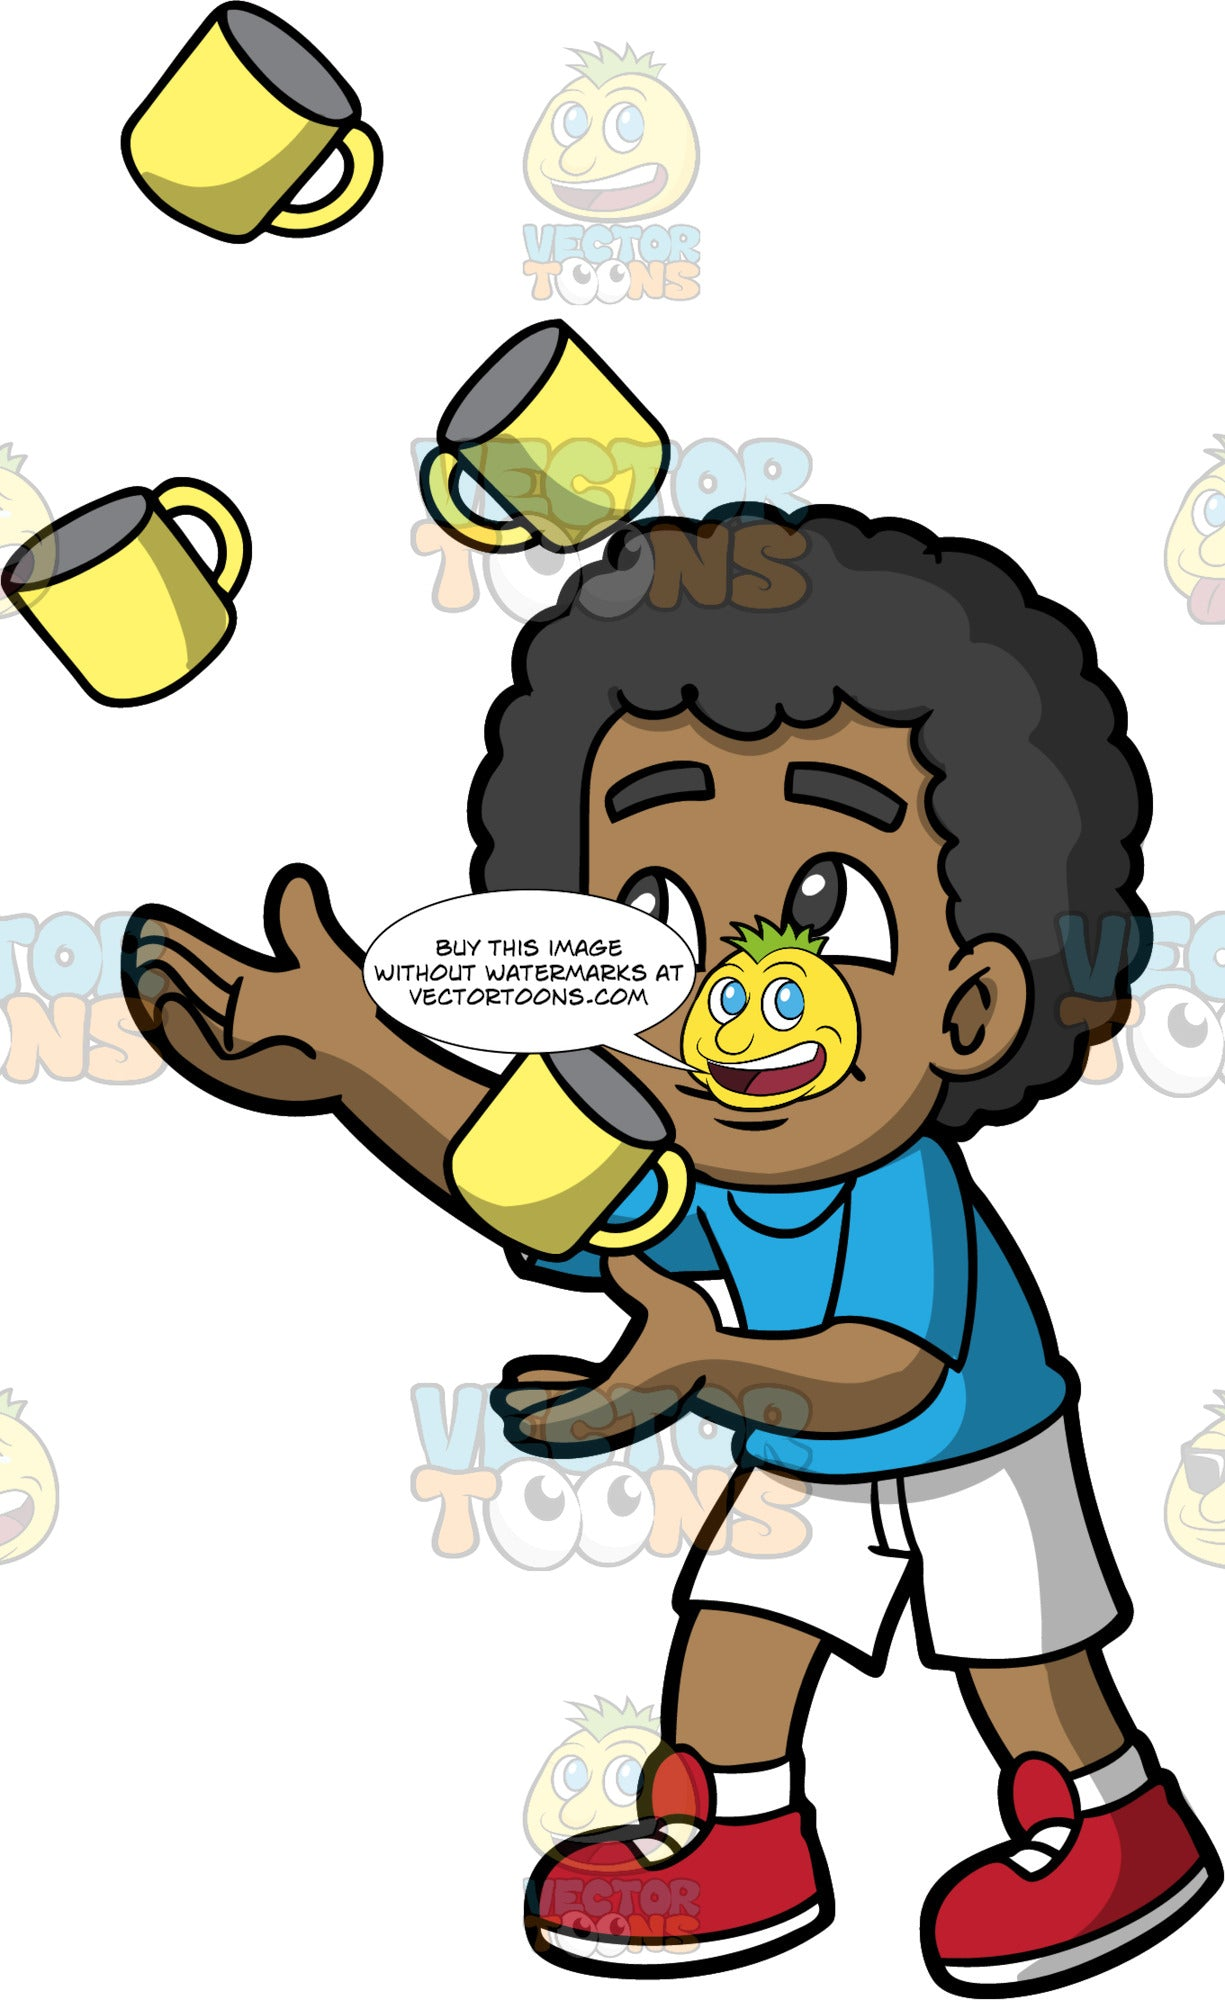 A Black Boy Expertly Juggling Coffee Mugs. A black boy wearing white shorts, a blue shirt, white socks, and red shoes, carefully juggles four yellow coffee mugs